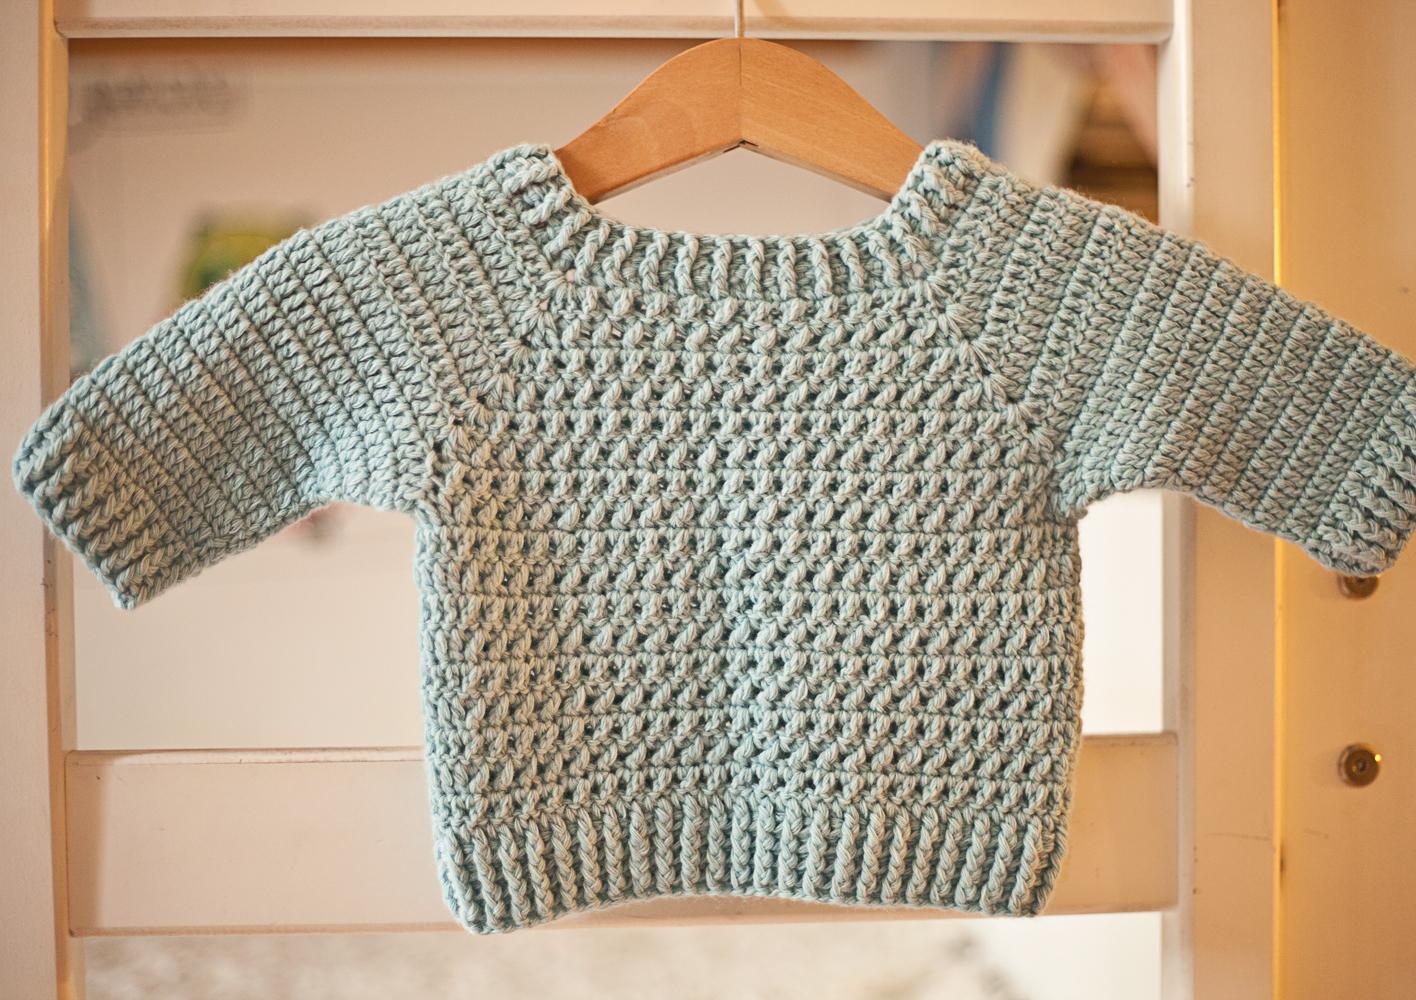 Crochet for boys? Check out our new sweater pattern! - Mon Petit Violon